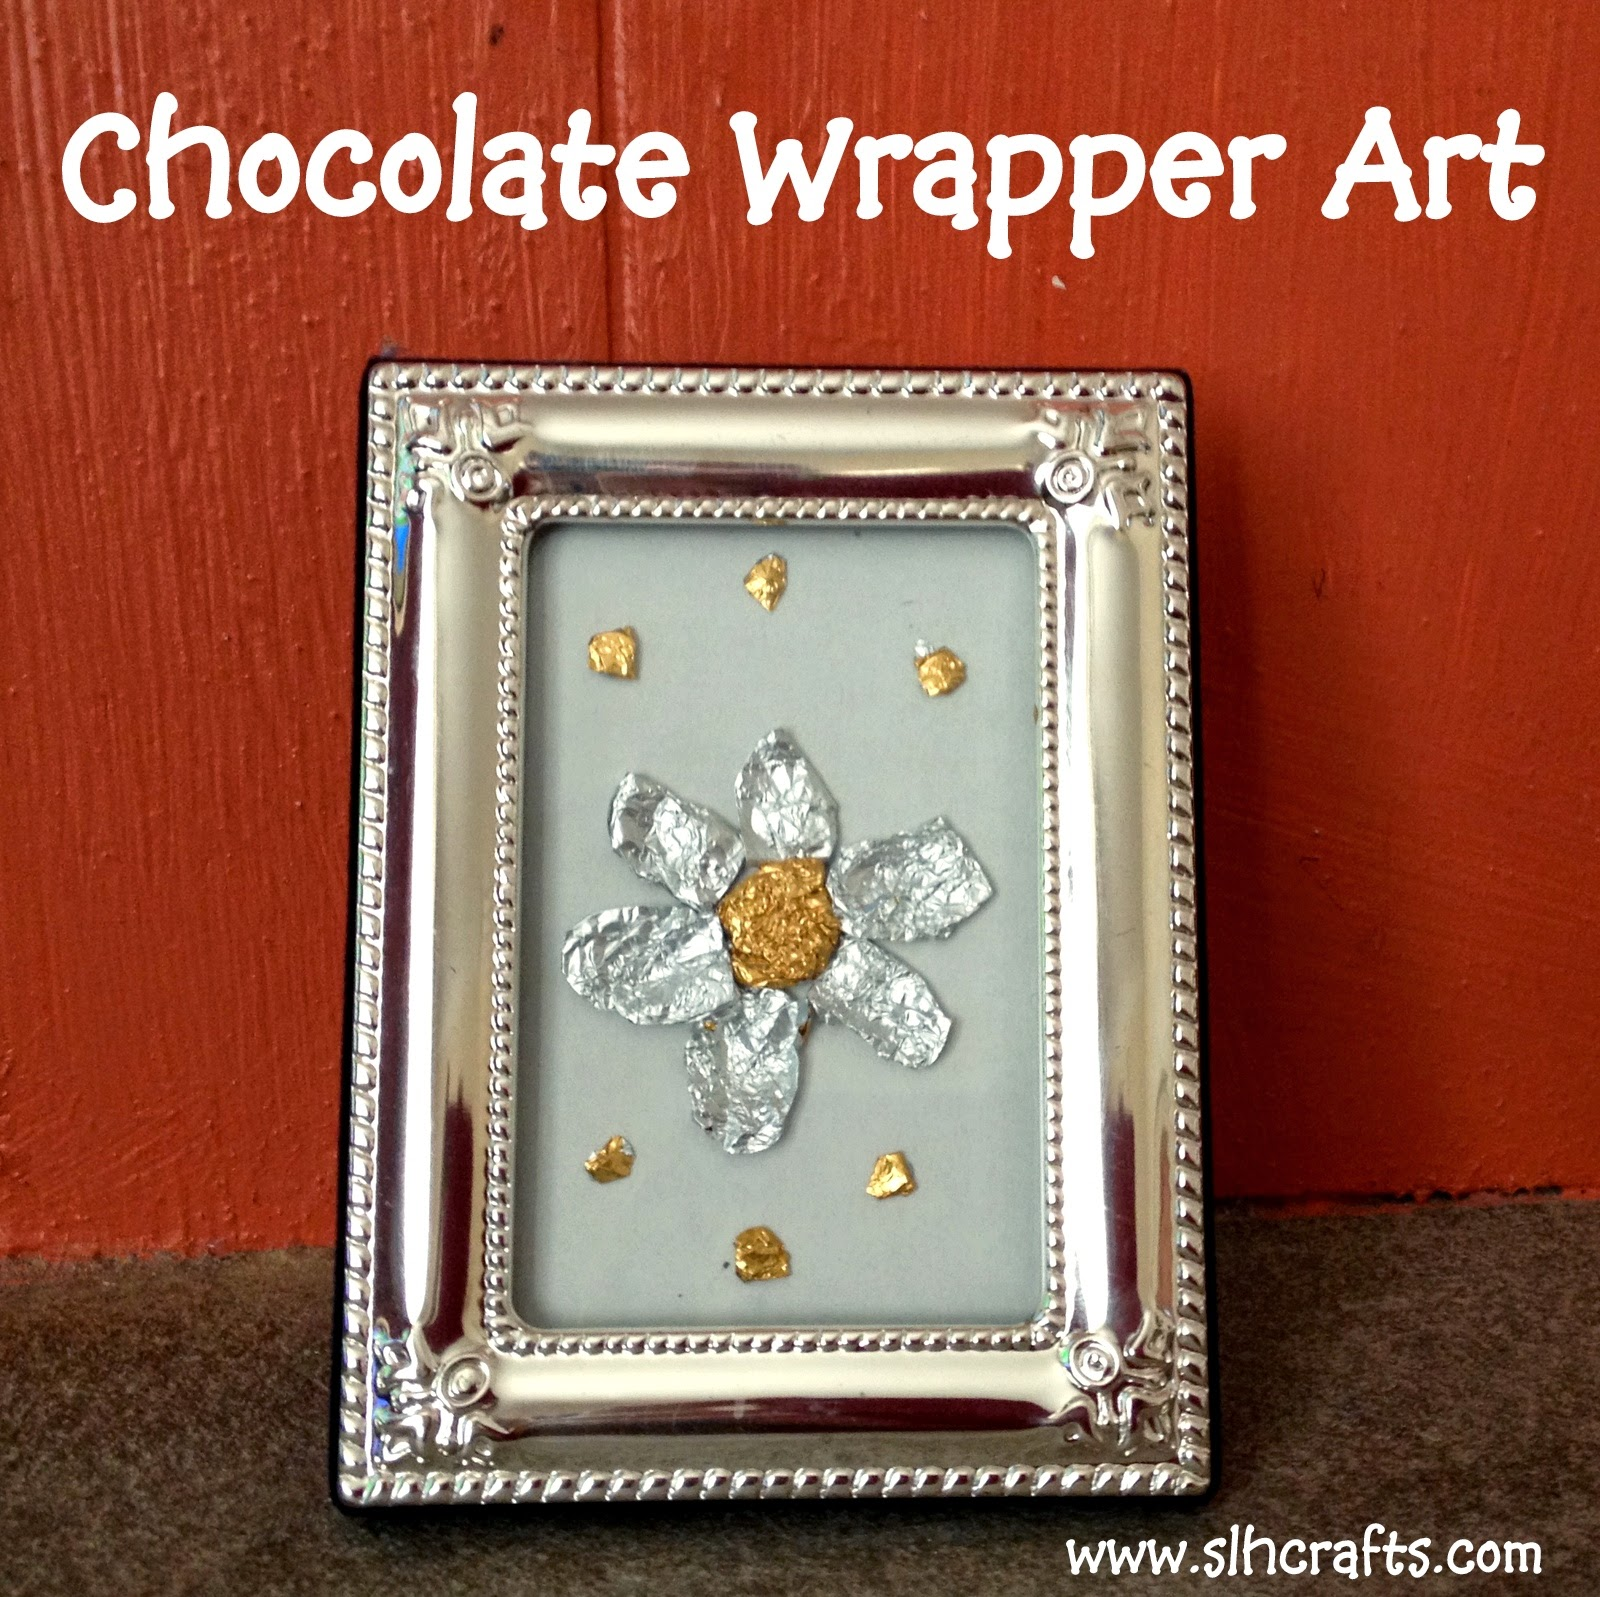 chocolate wrapper art